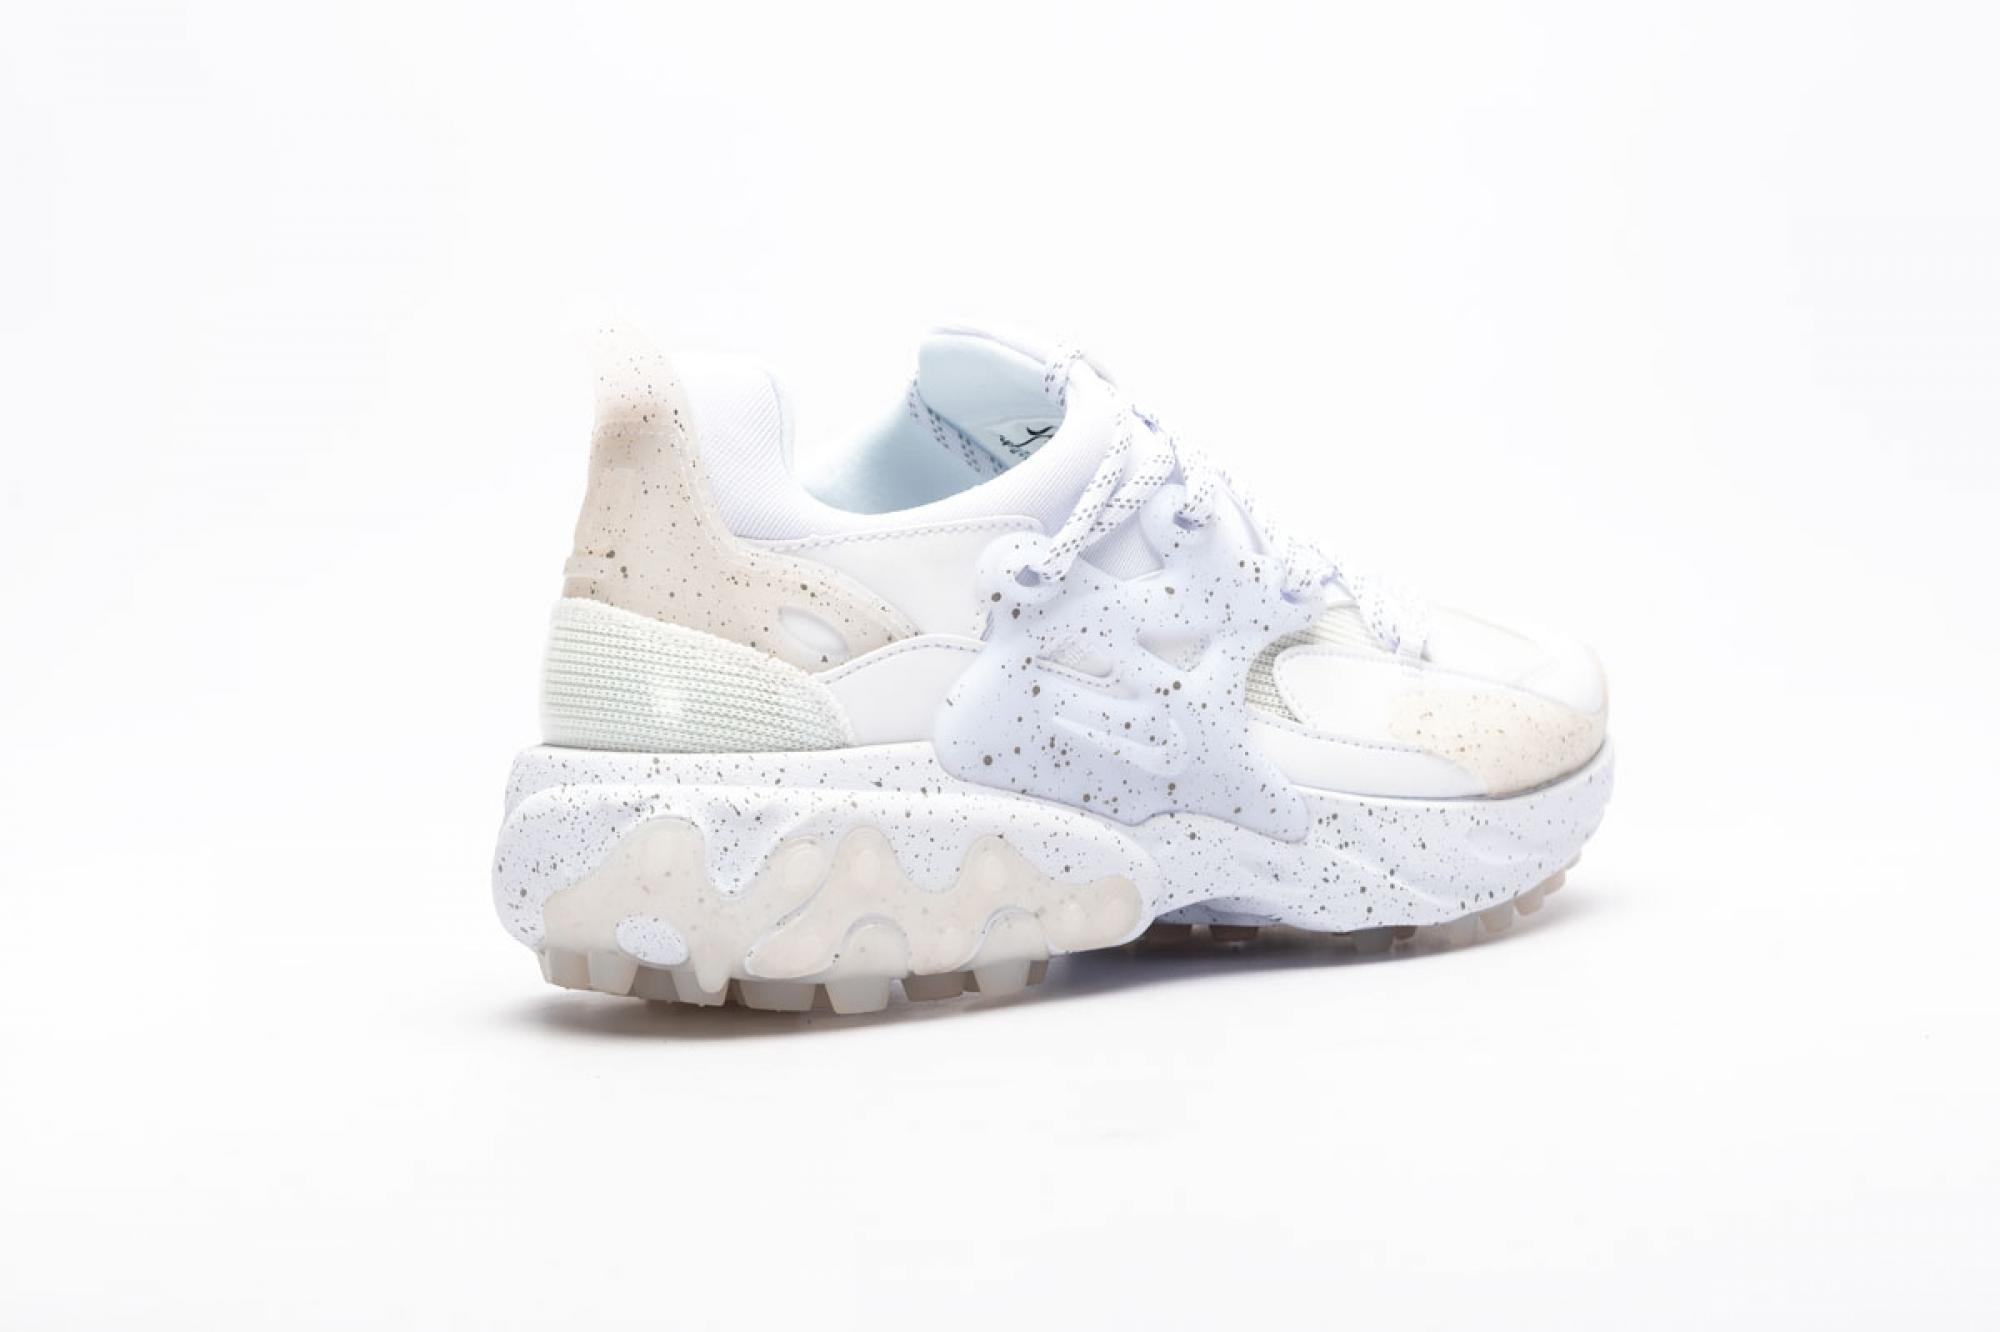 Cheap Website Women Nike React Presto / Undercover QS Running White / Black - White CU3459-100 Ship International